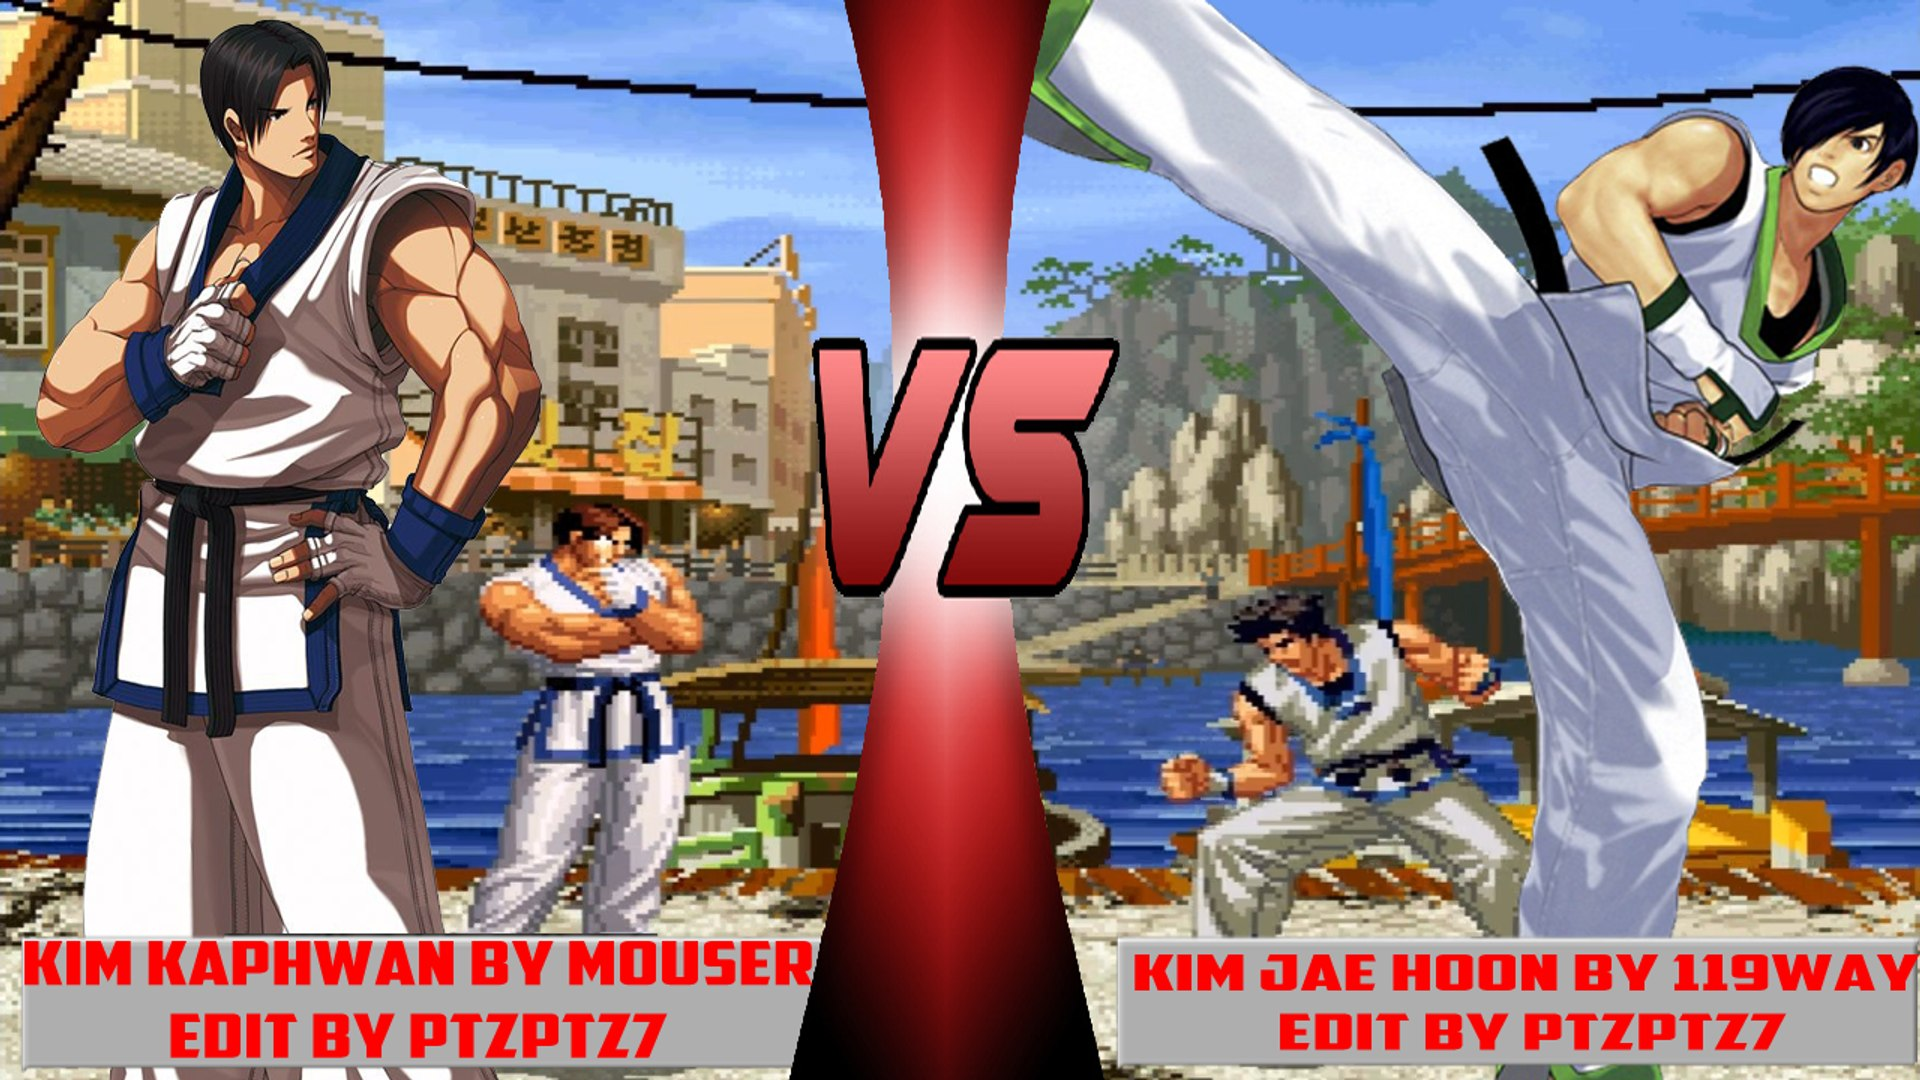 mugen kof kim kaphwan mouser vs kim jae hoon 119way video dailymotion mugen kof kim kaphwan mouser vs